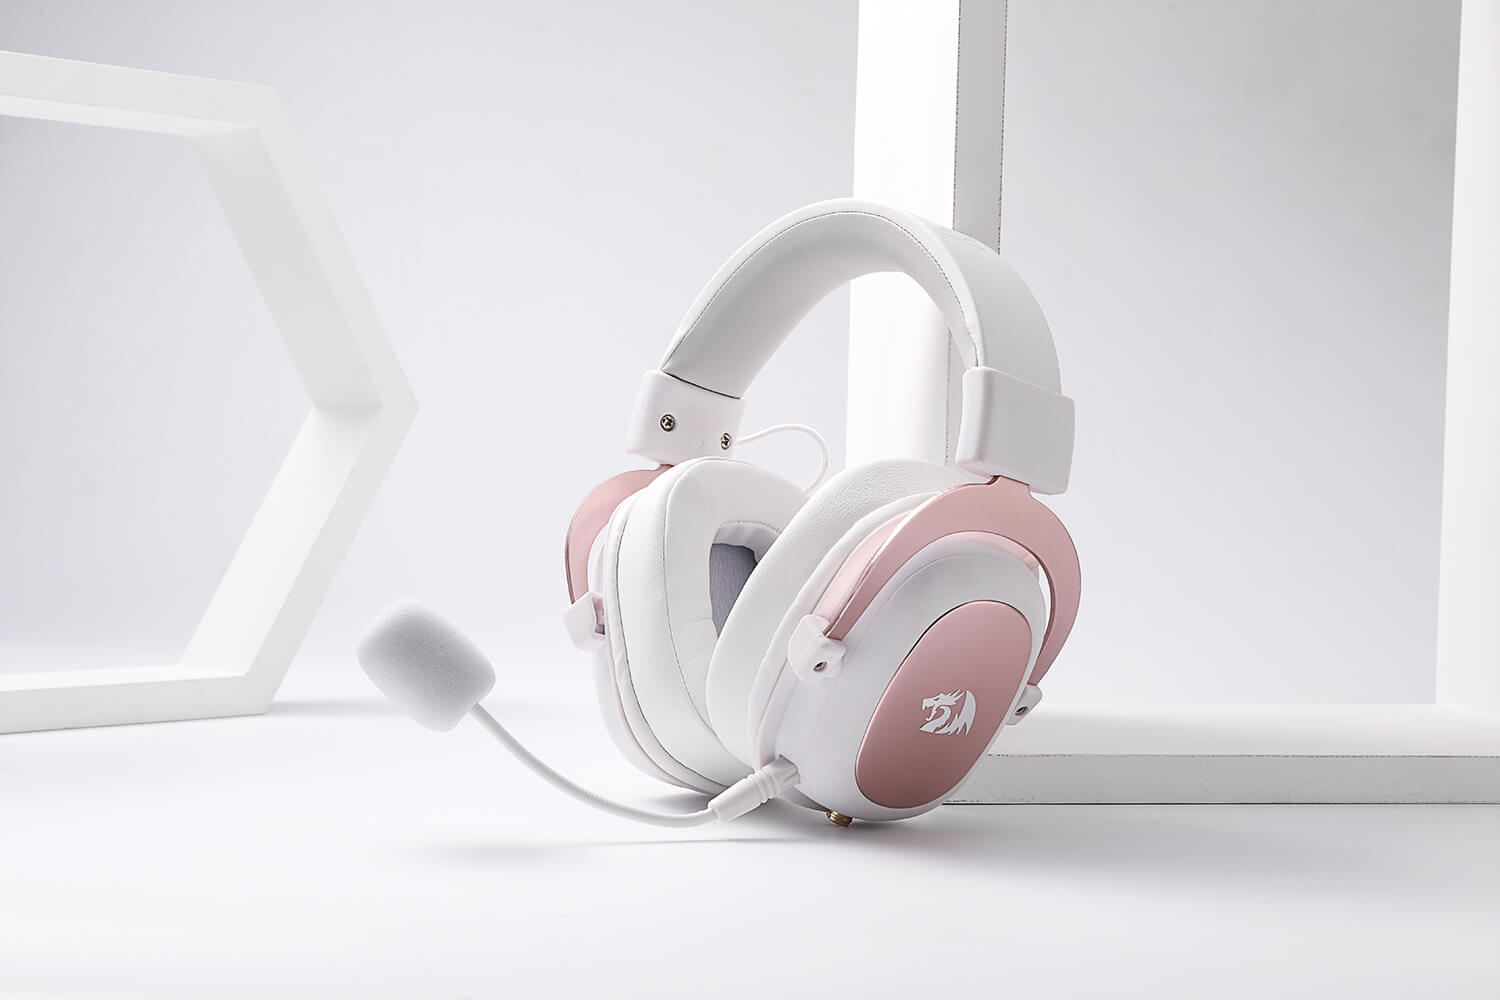 redragon white and pink gaming headset 1